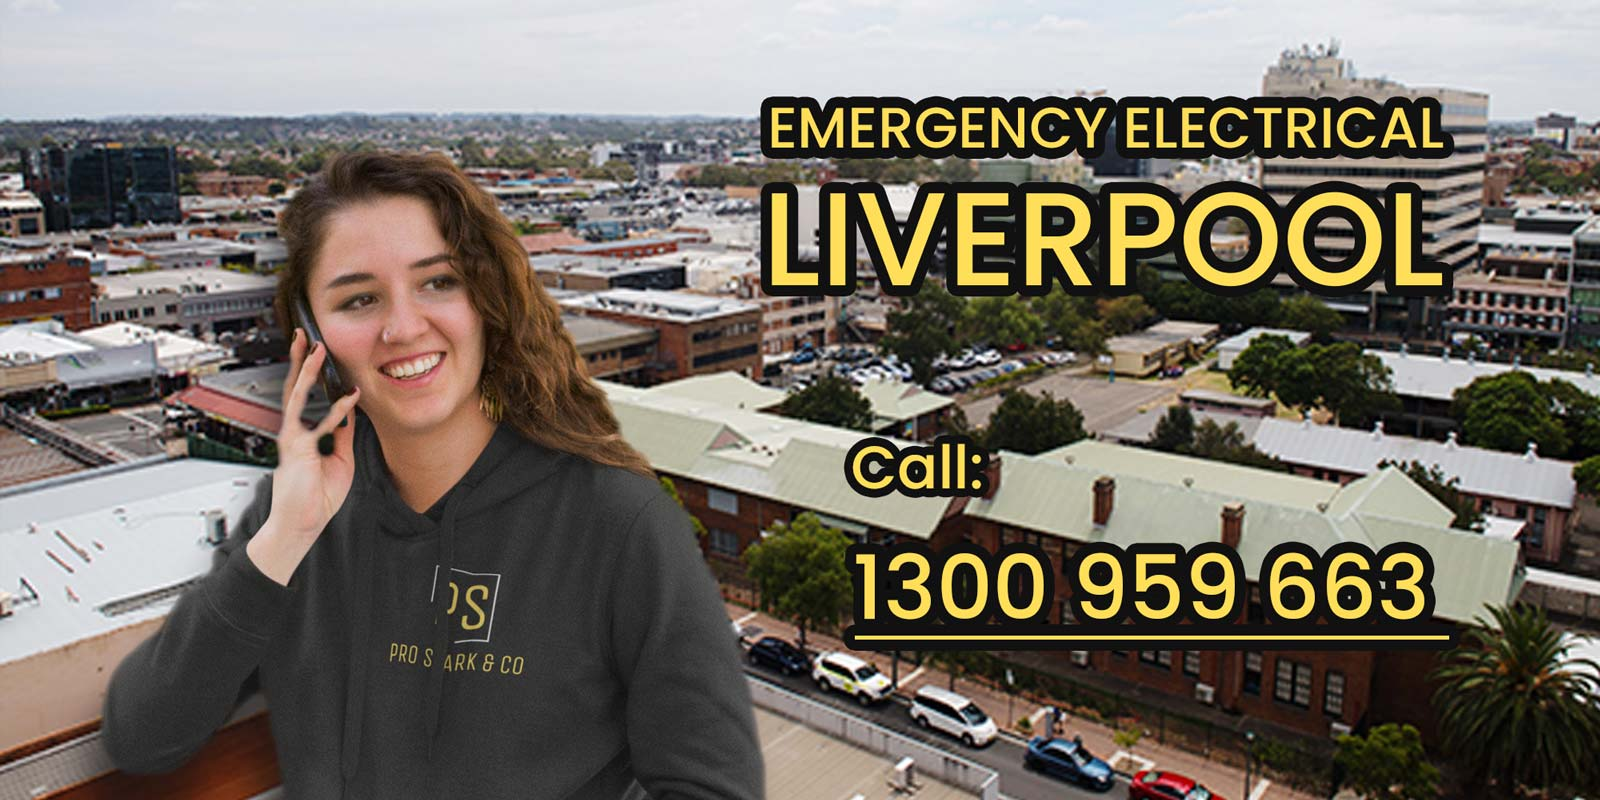 Emergency Electrician Liverpool NSW | 24/7 Response